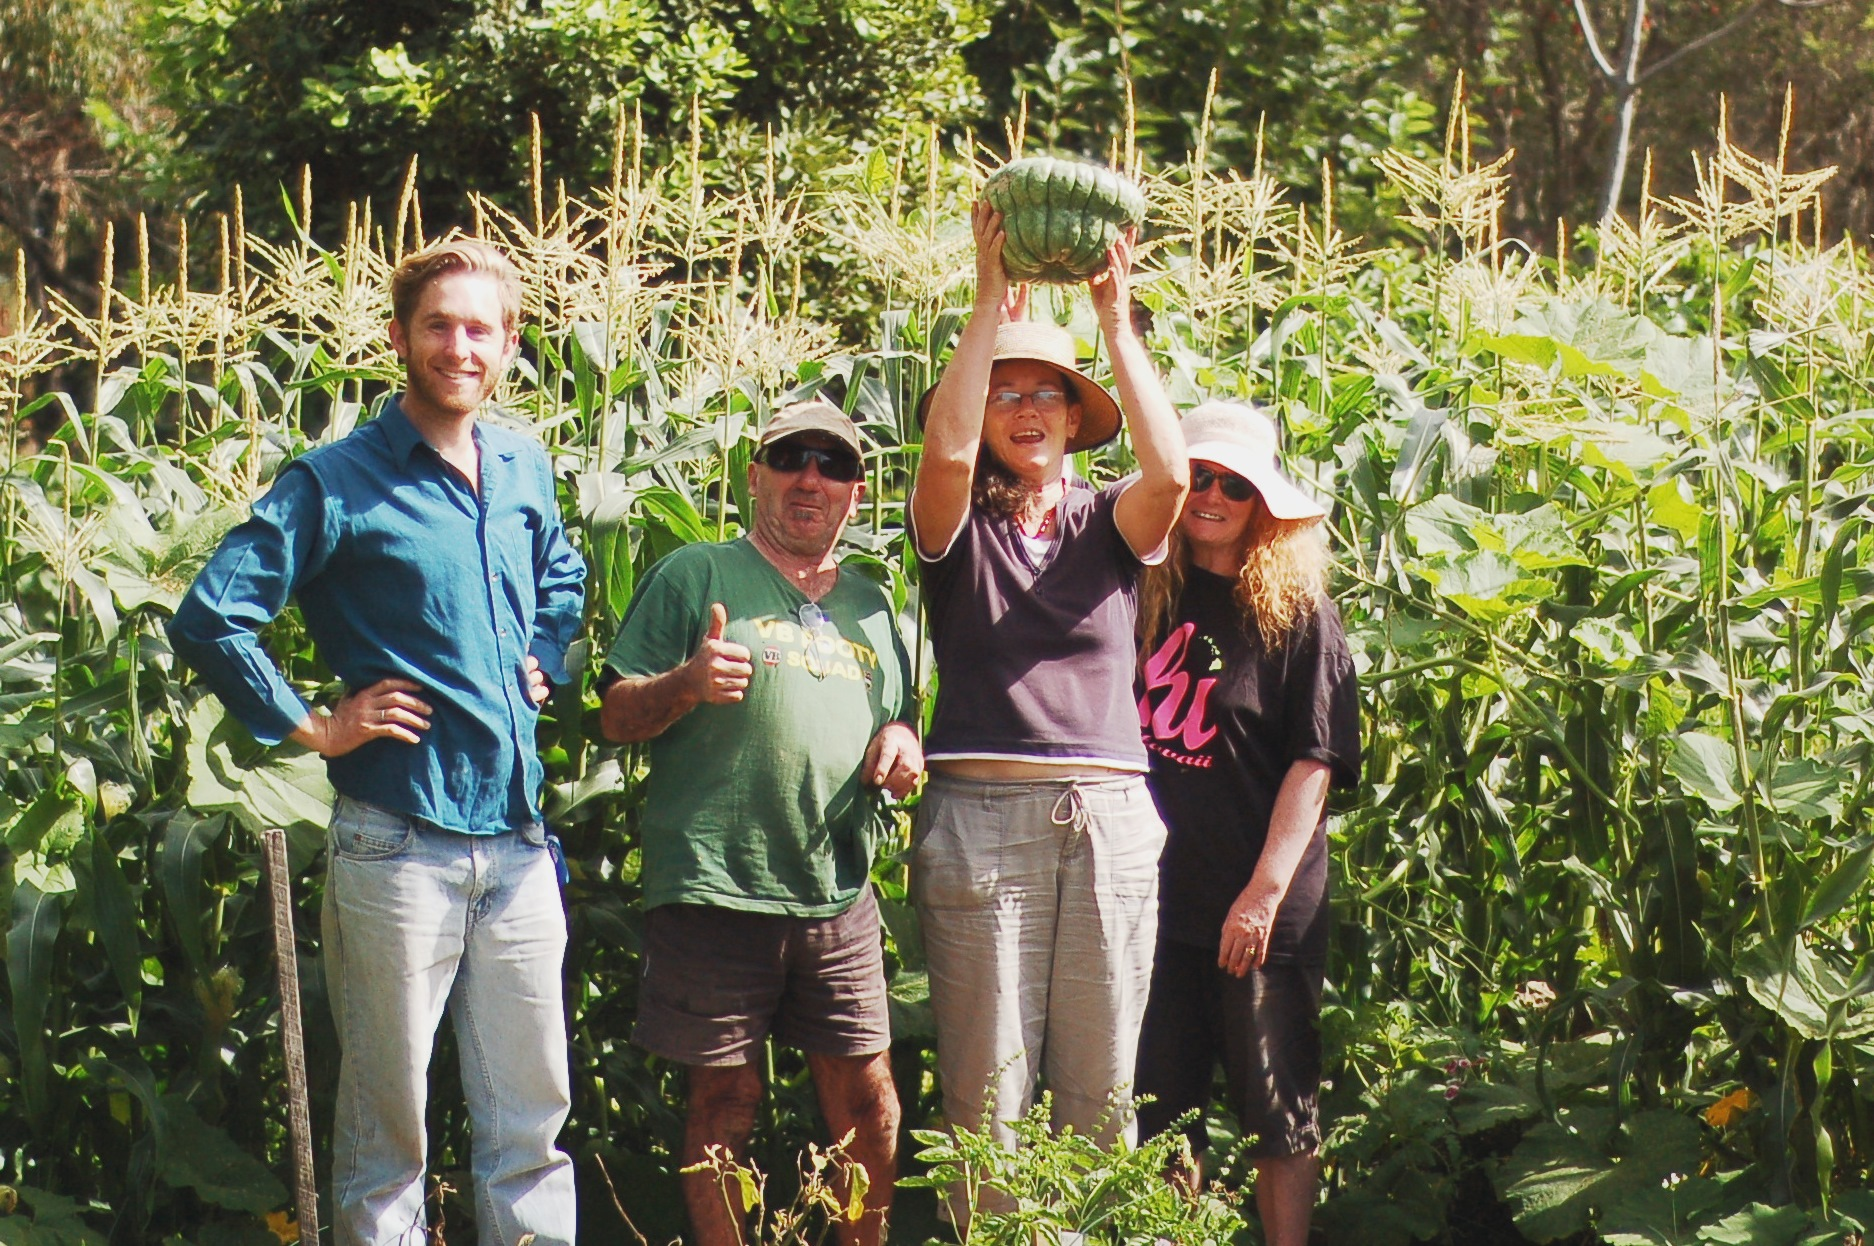 Our Happy gardeners amongst the corn.